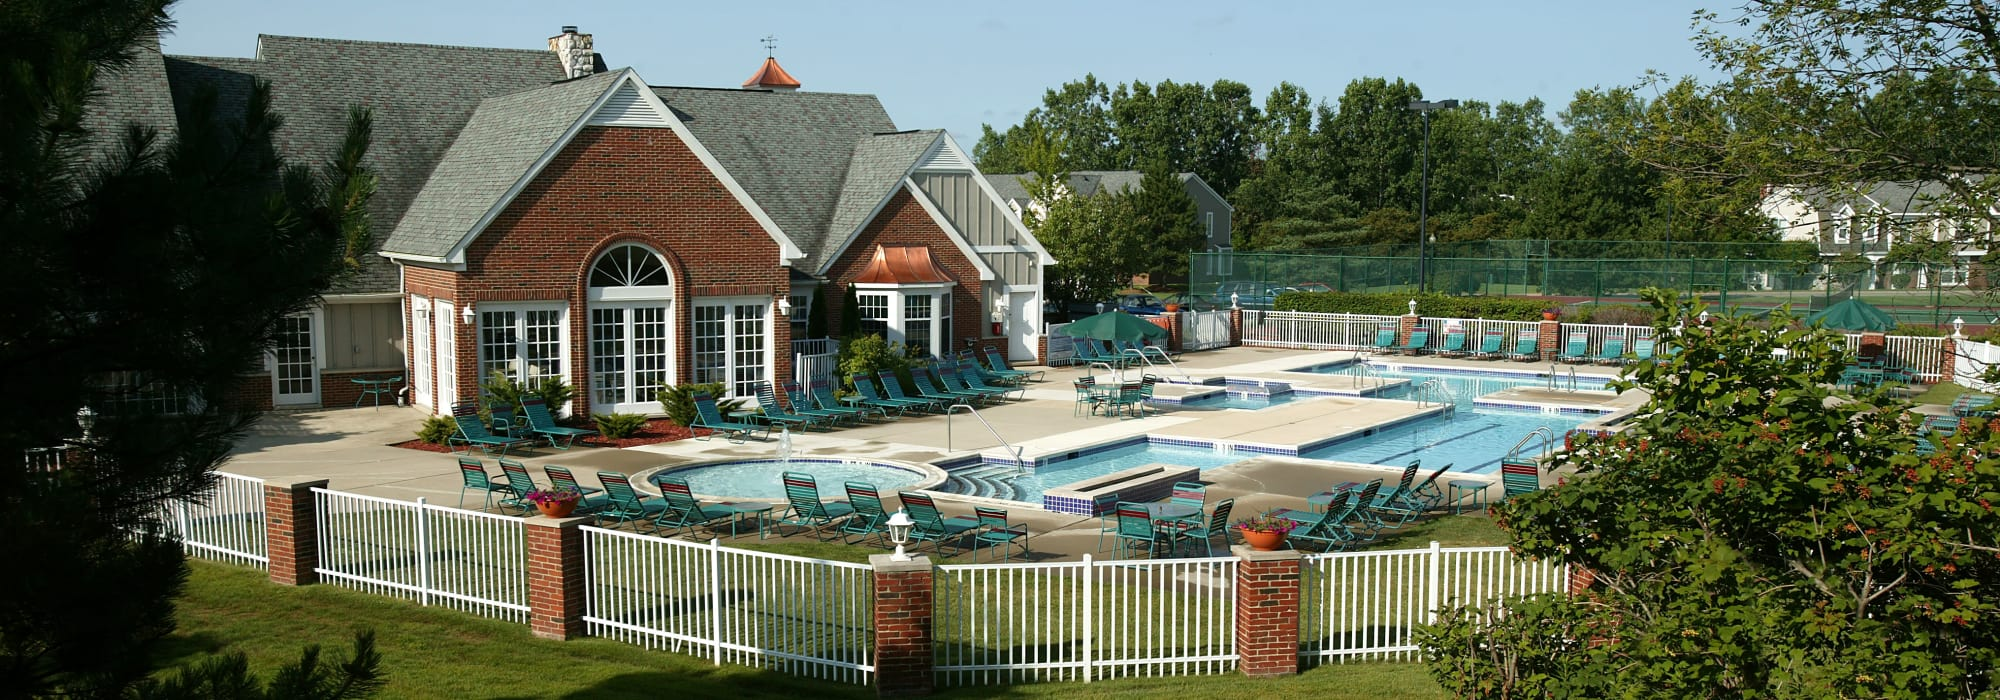 Apartments at Citation Club in Farmington Hills, Michigan